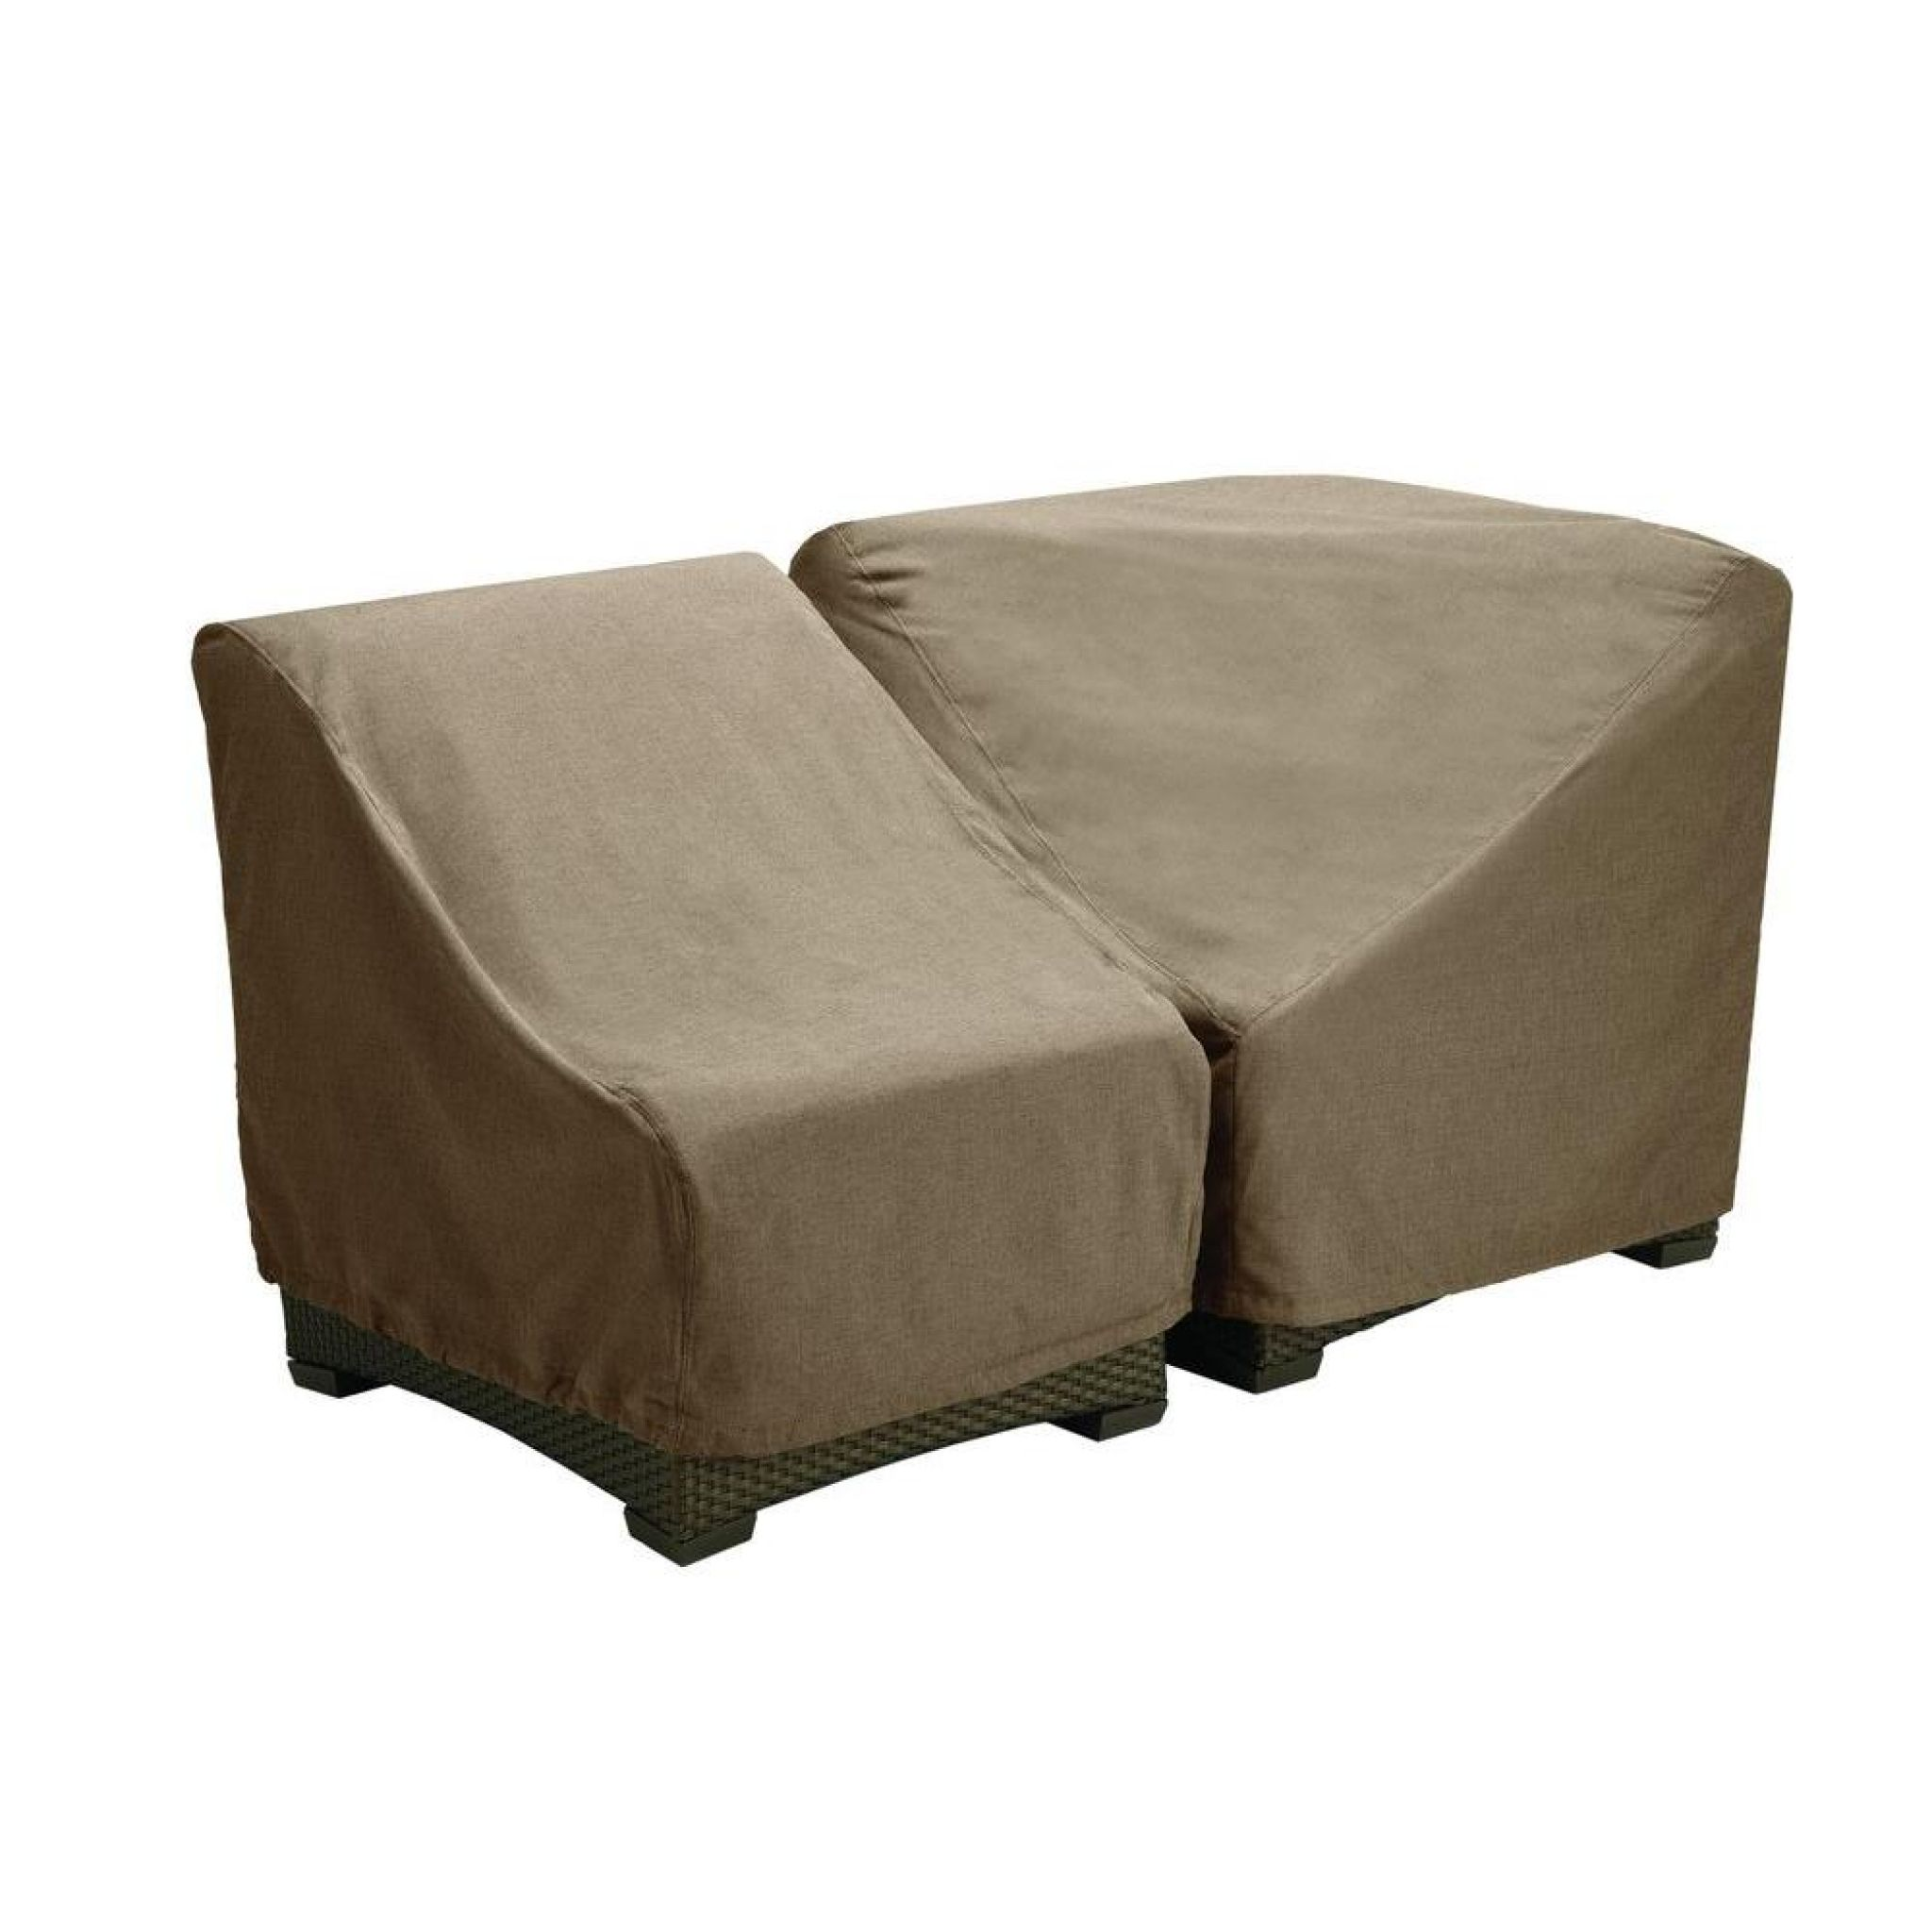 outdoor furniture covers home depot. Home Depot Outdoor Furniture Covers - Interior Paint Color Schemes Check More At Http:/